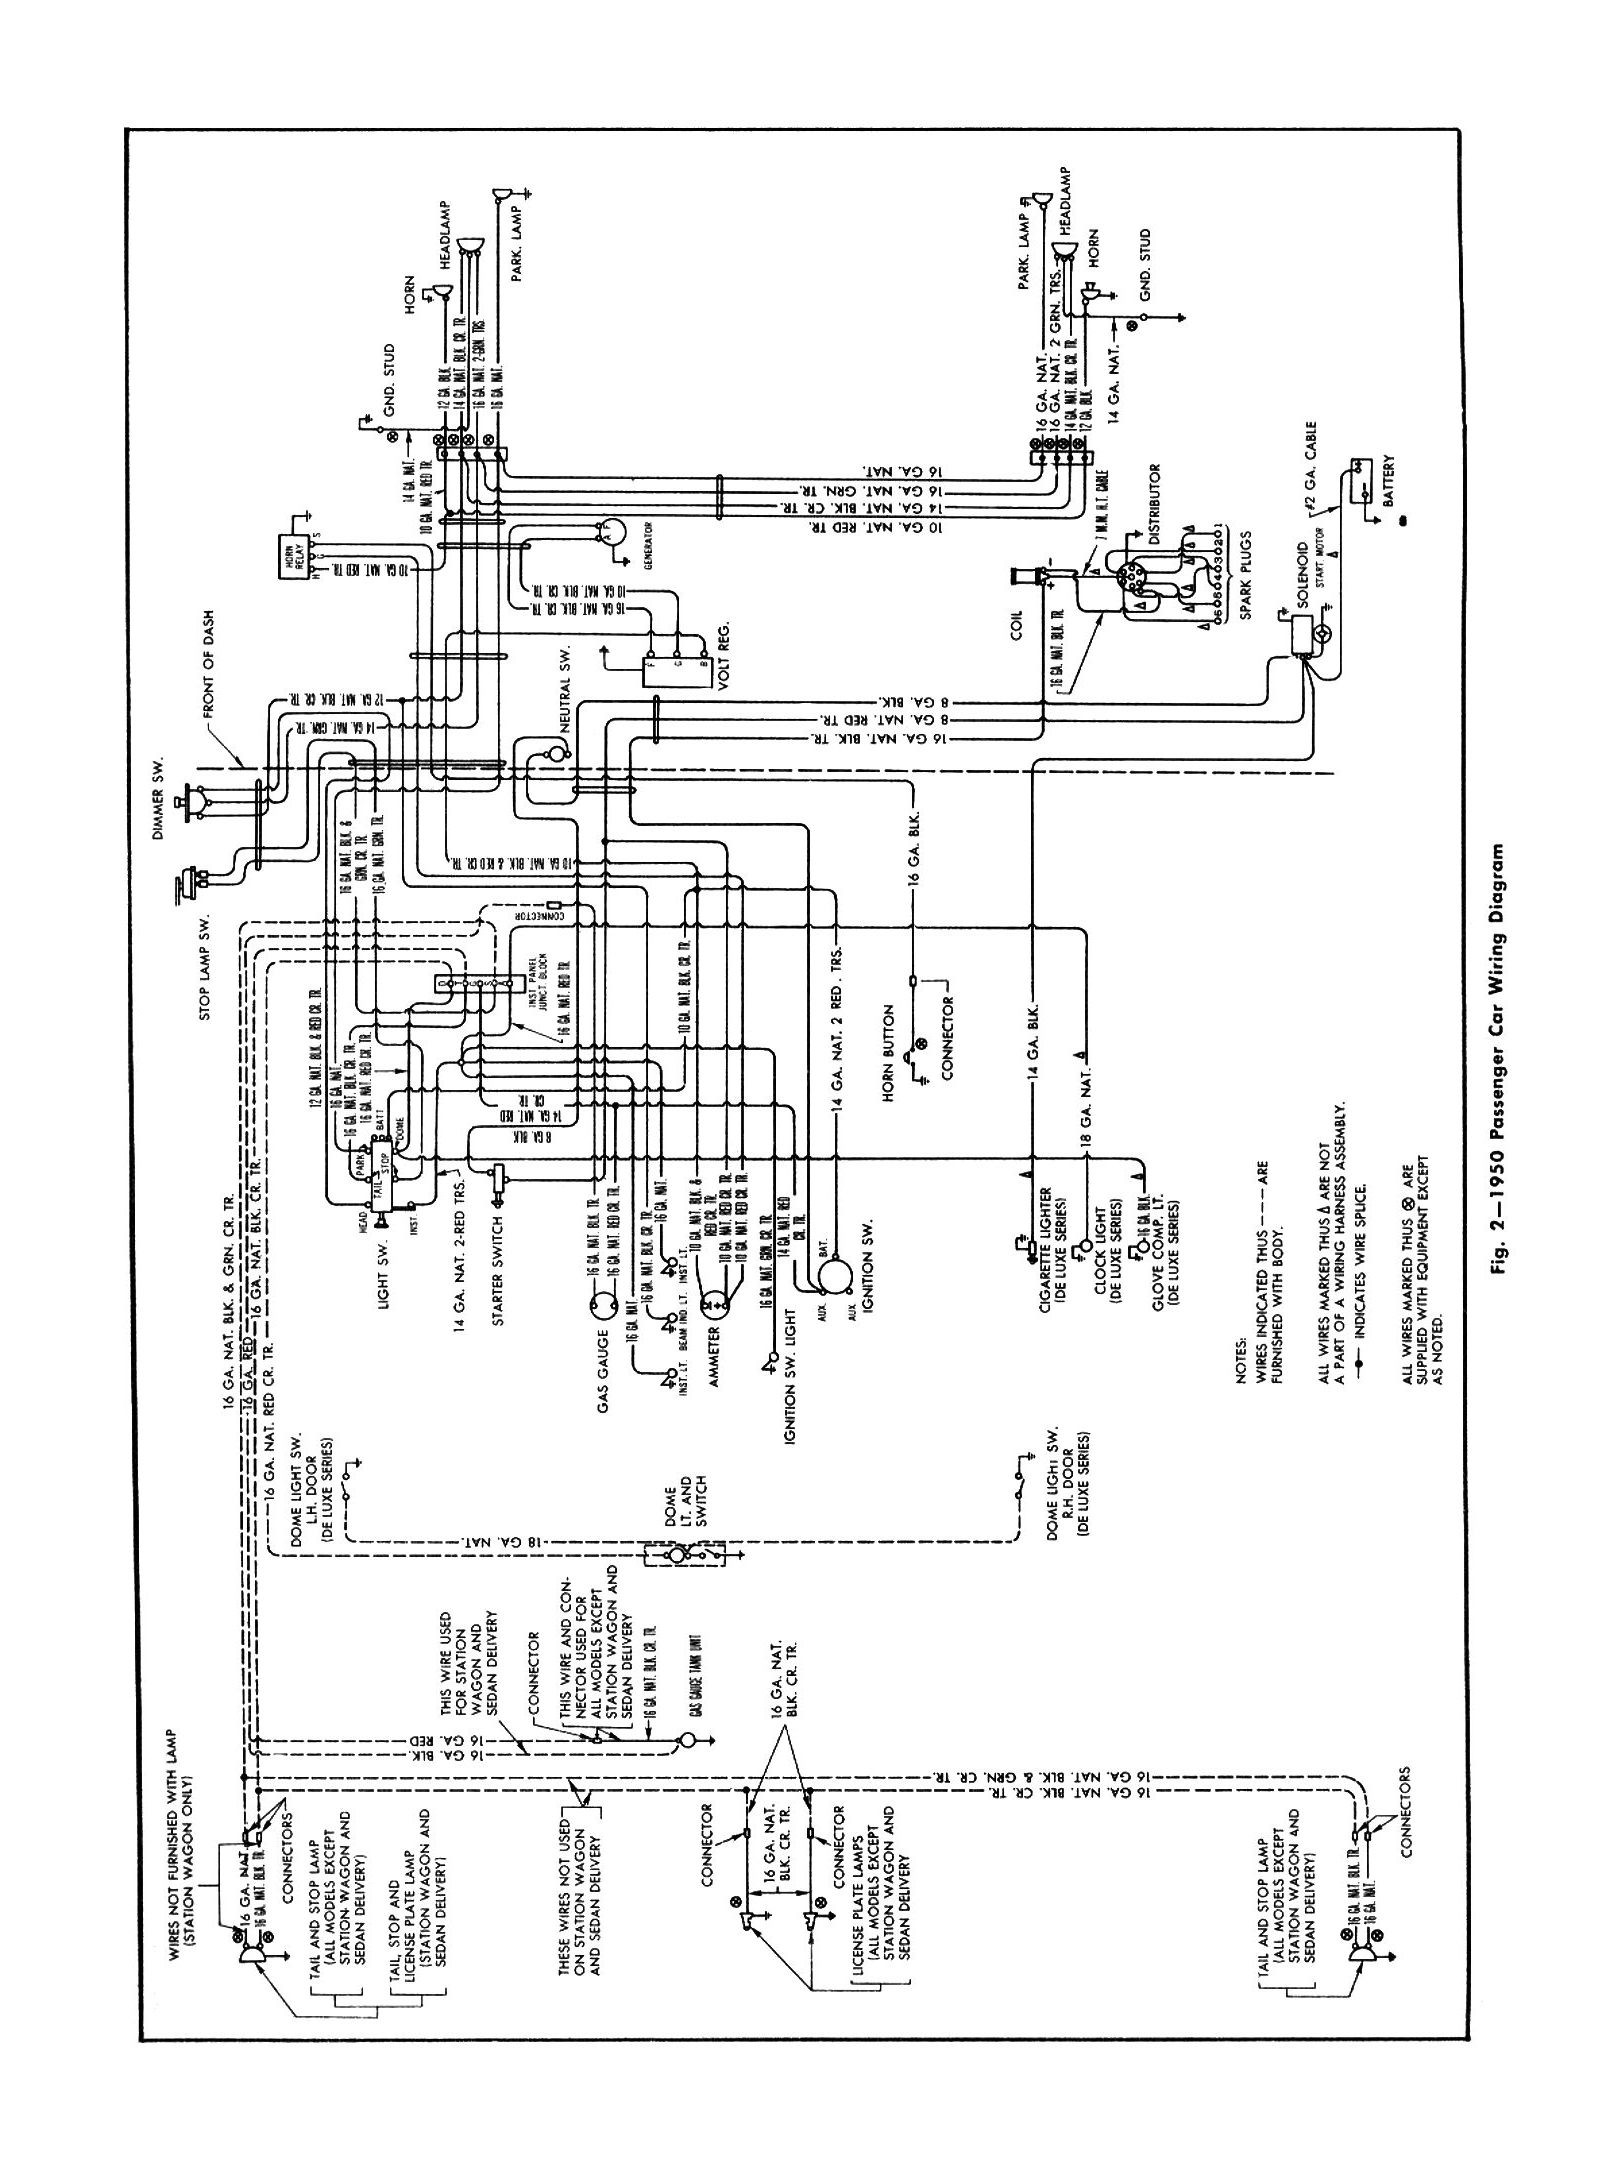 50car 1953 gmc truck wiring diagram wiring diagrams schematics